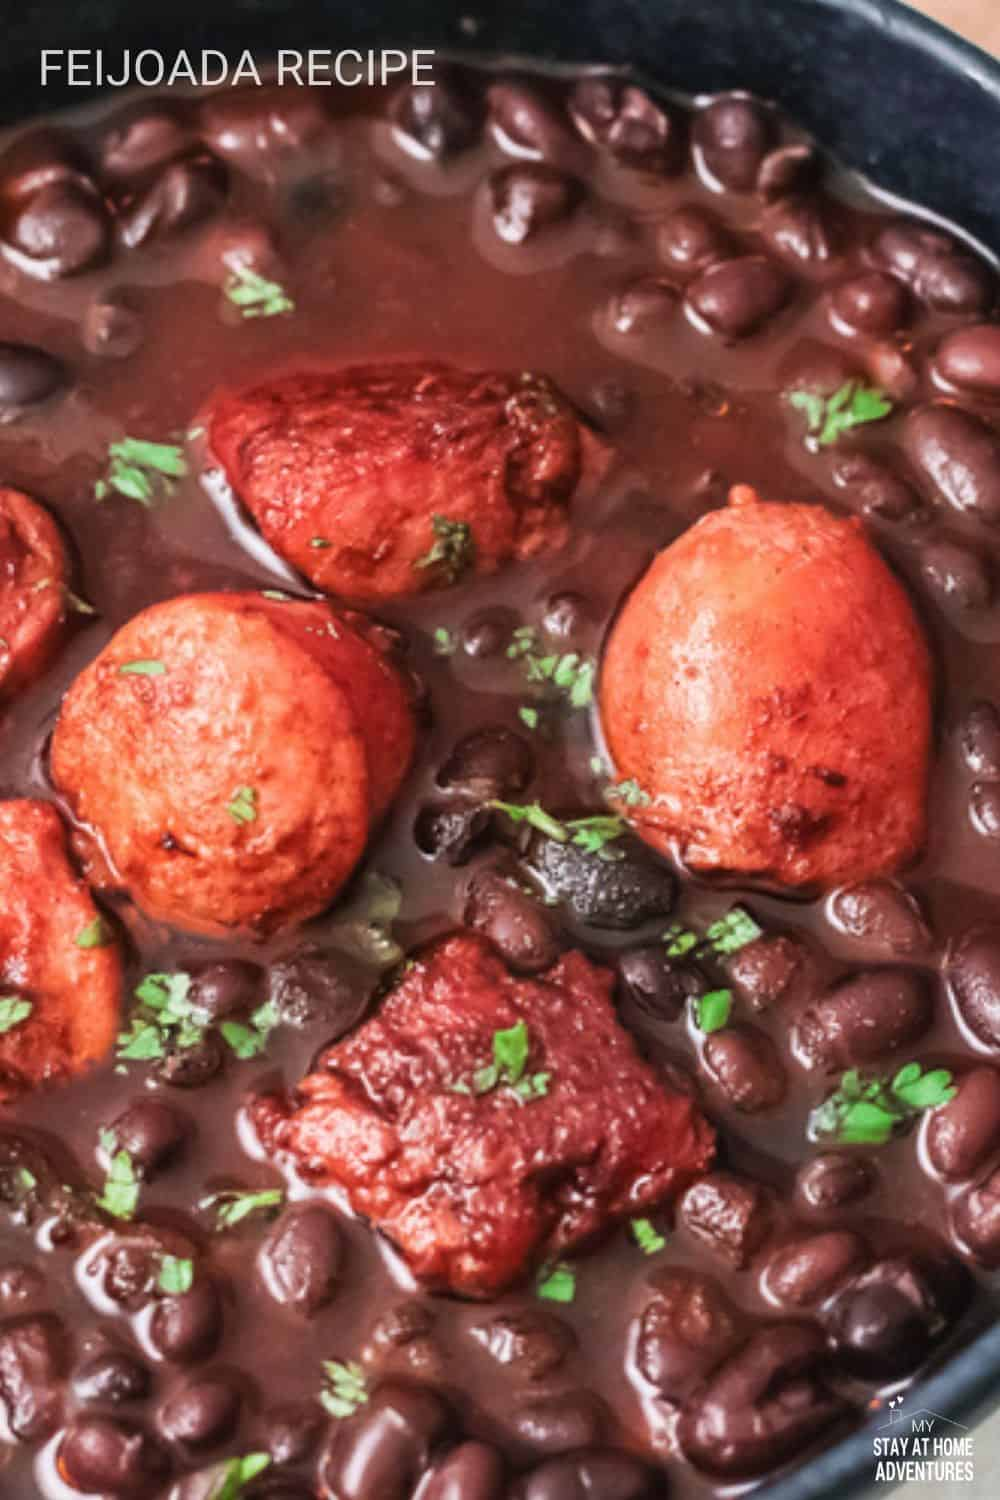 This feijoada recipe is a traditional dish served in Brazil, Portugal, and Angola. It's known for being a hearty stew that usually includes black beans, meat (usually beef or pork), bacon, sausage, rice with manioc flour, and vegetables. via @mystayathome